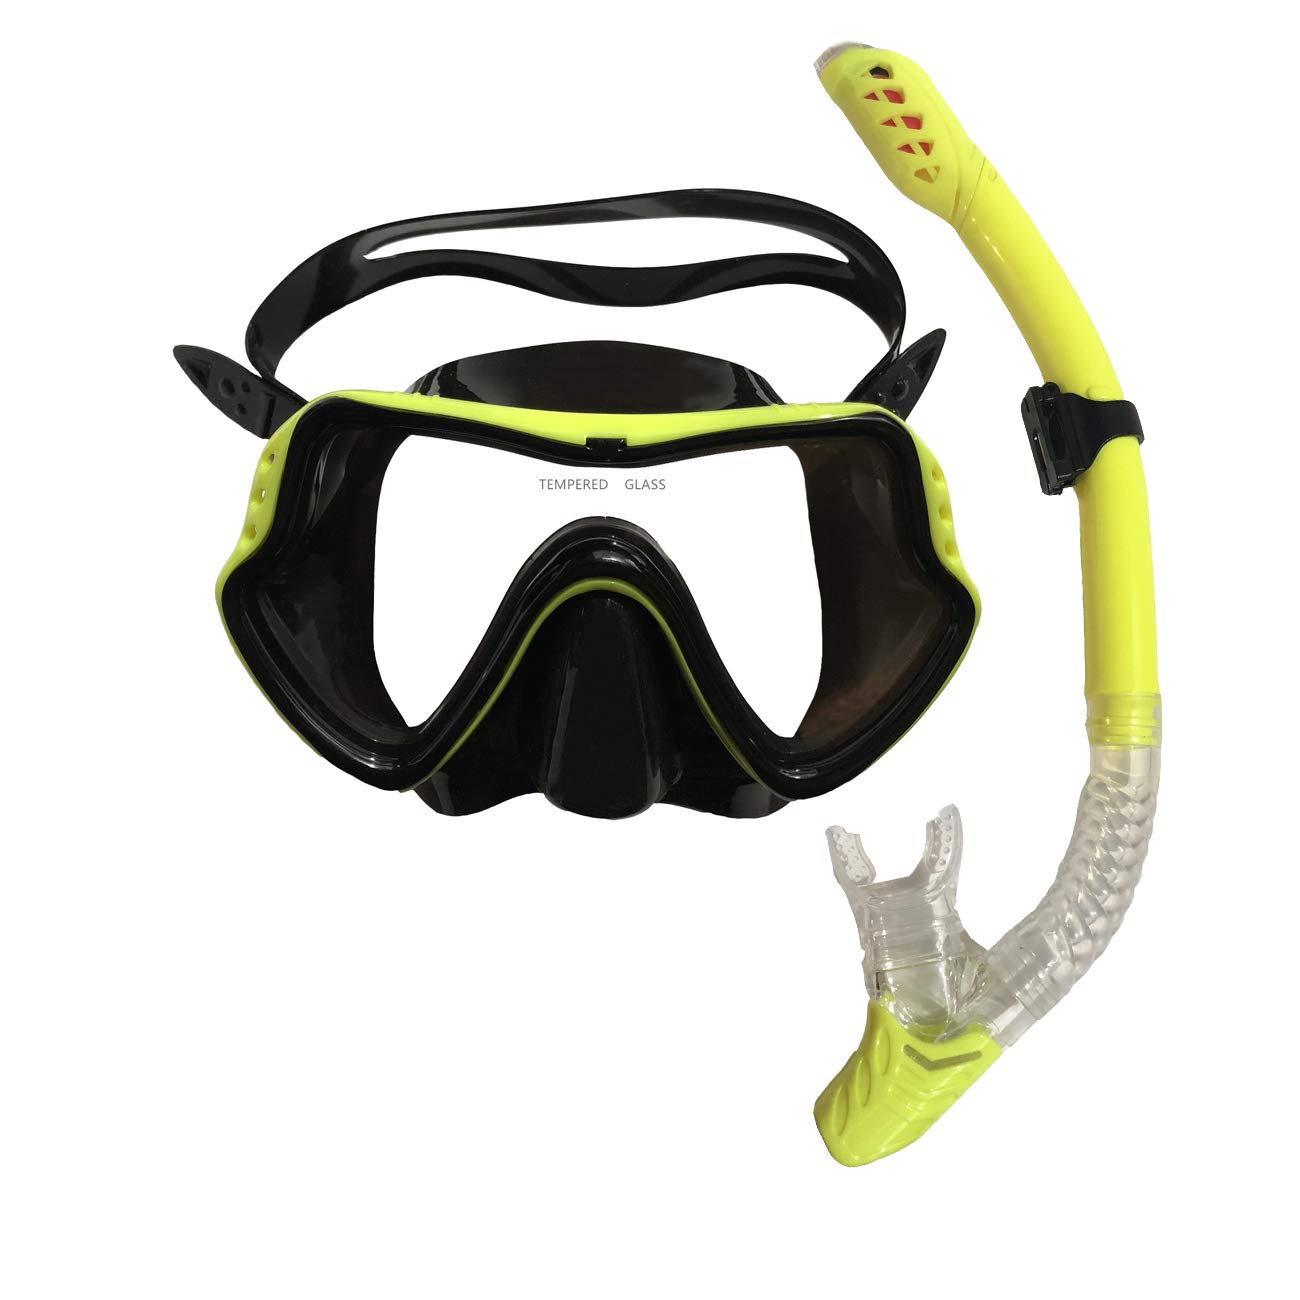 Cpsports Scuba Diving Snorkeling Freediving Mask Snorkel Set for Adult (black) by C.P. Sports